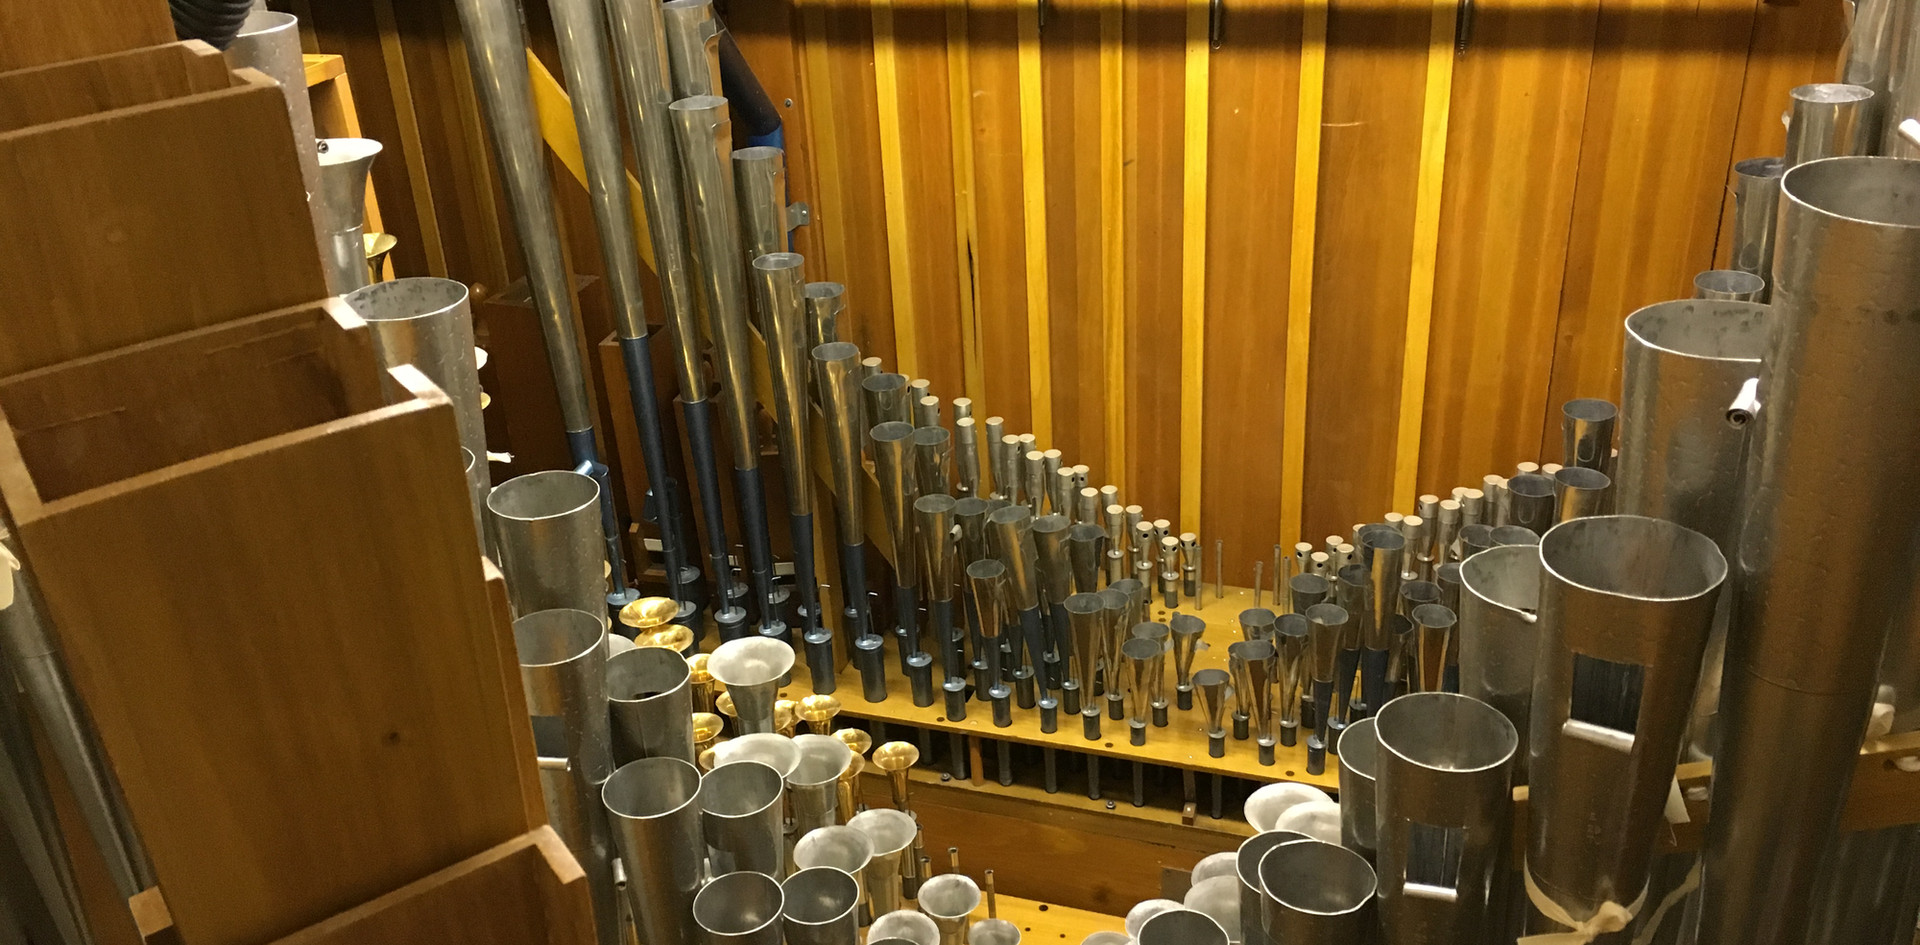 View into the Solo Chamber. The wood bass pipes (far left) belong to the Tuba Mirabilis.